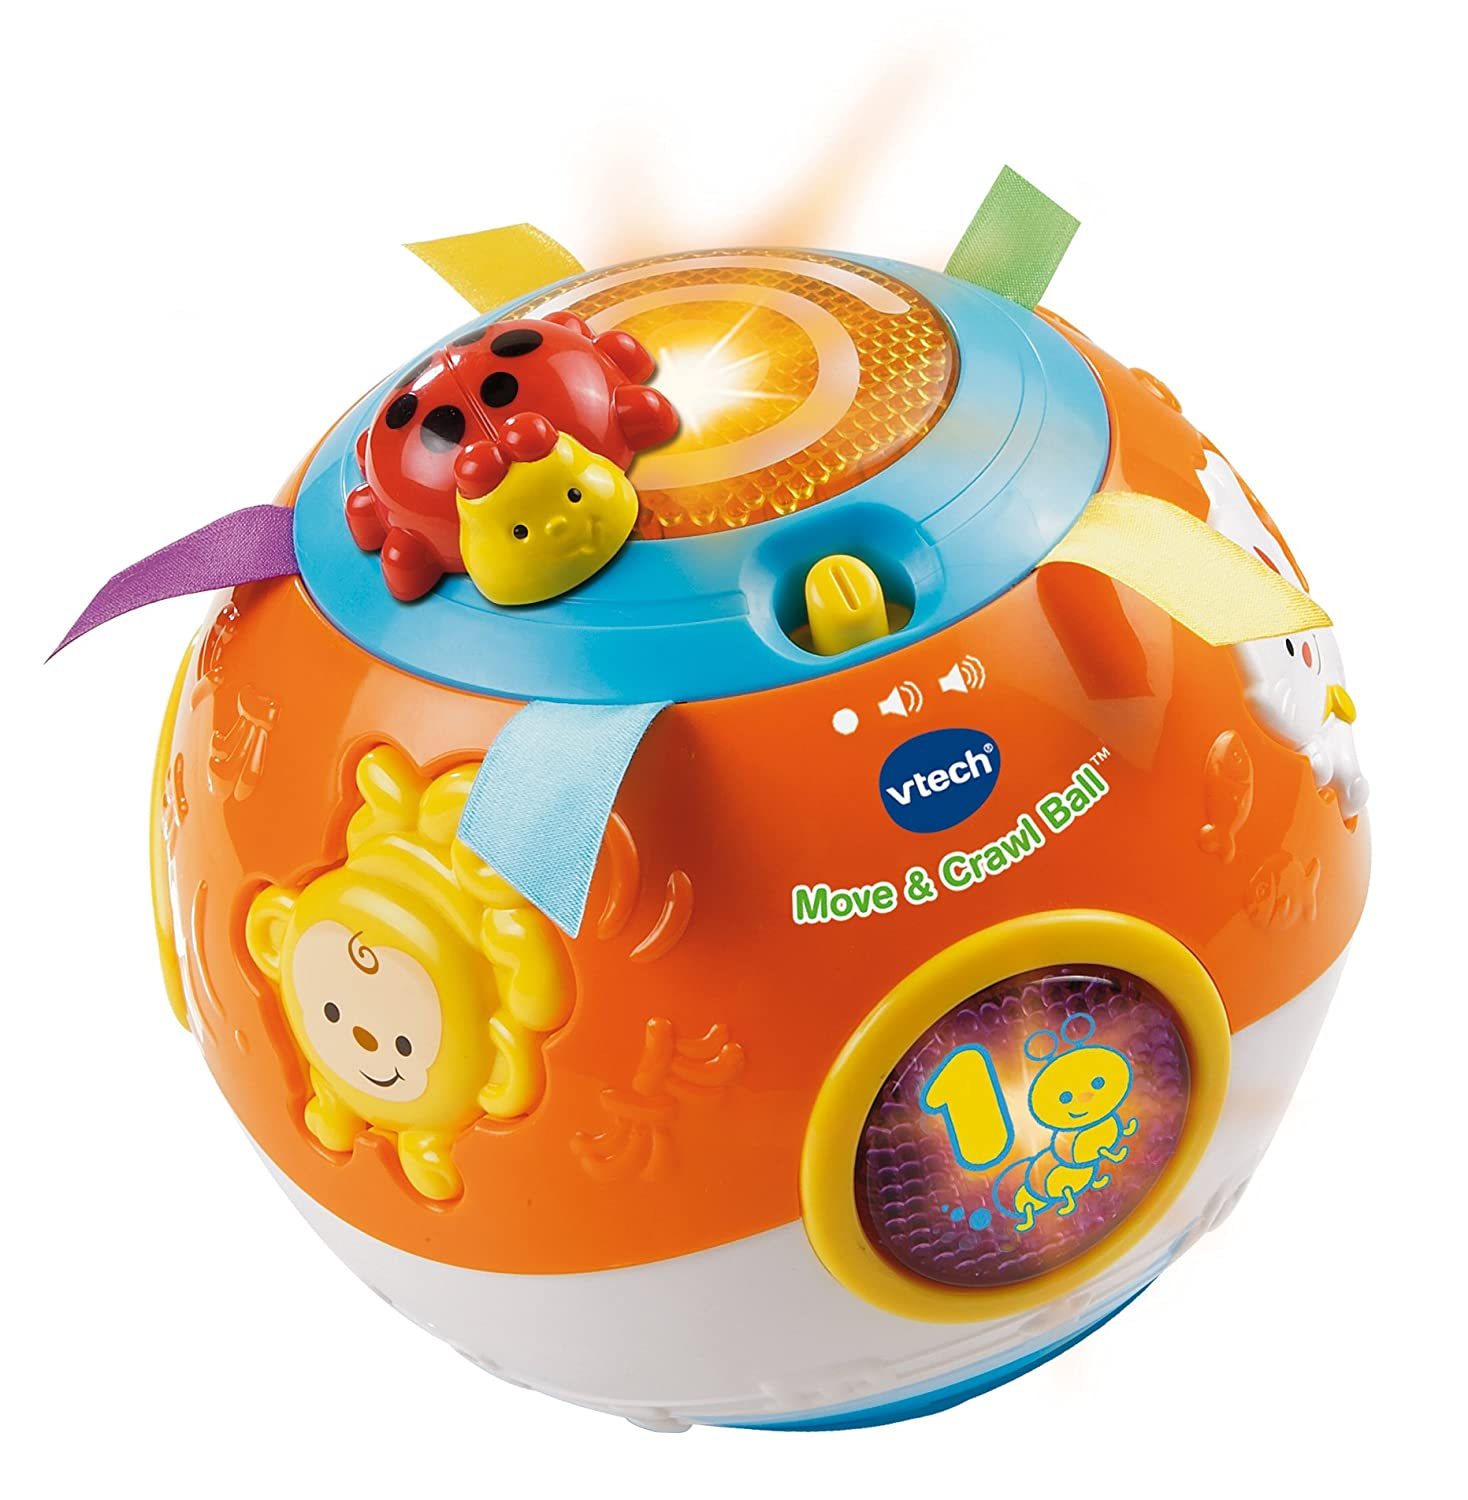 18 Month Old Toys For A Ball : Best toys for month old baby consumers